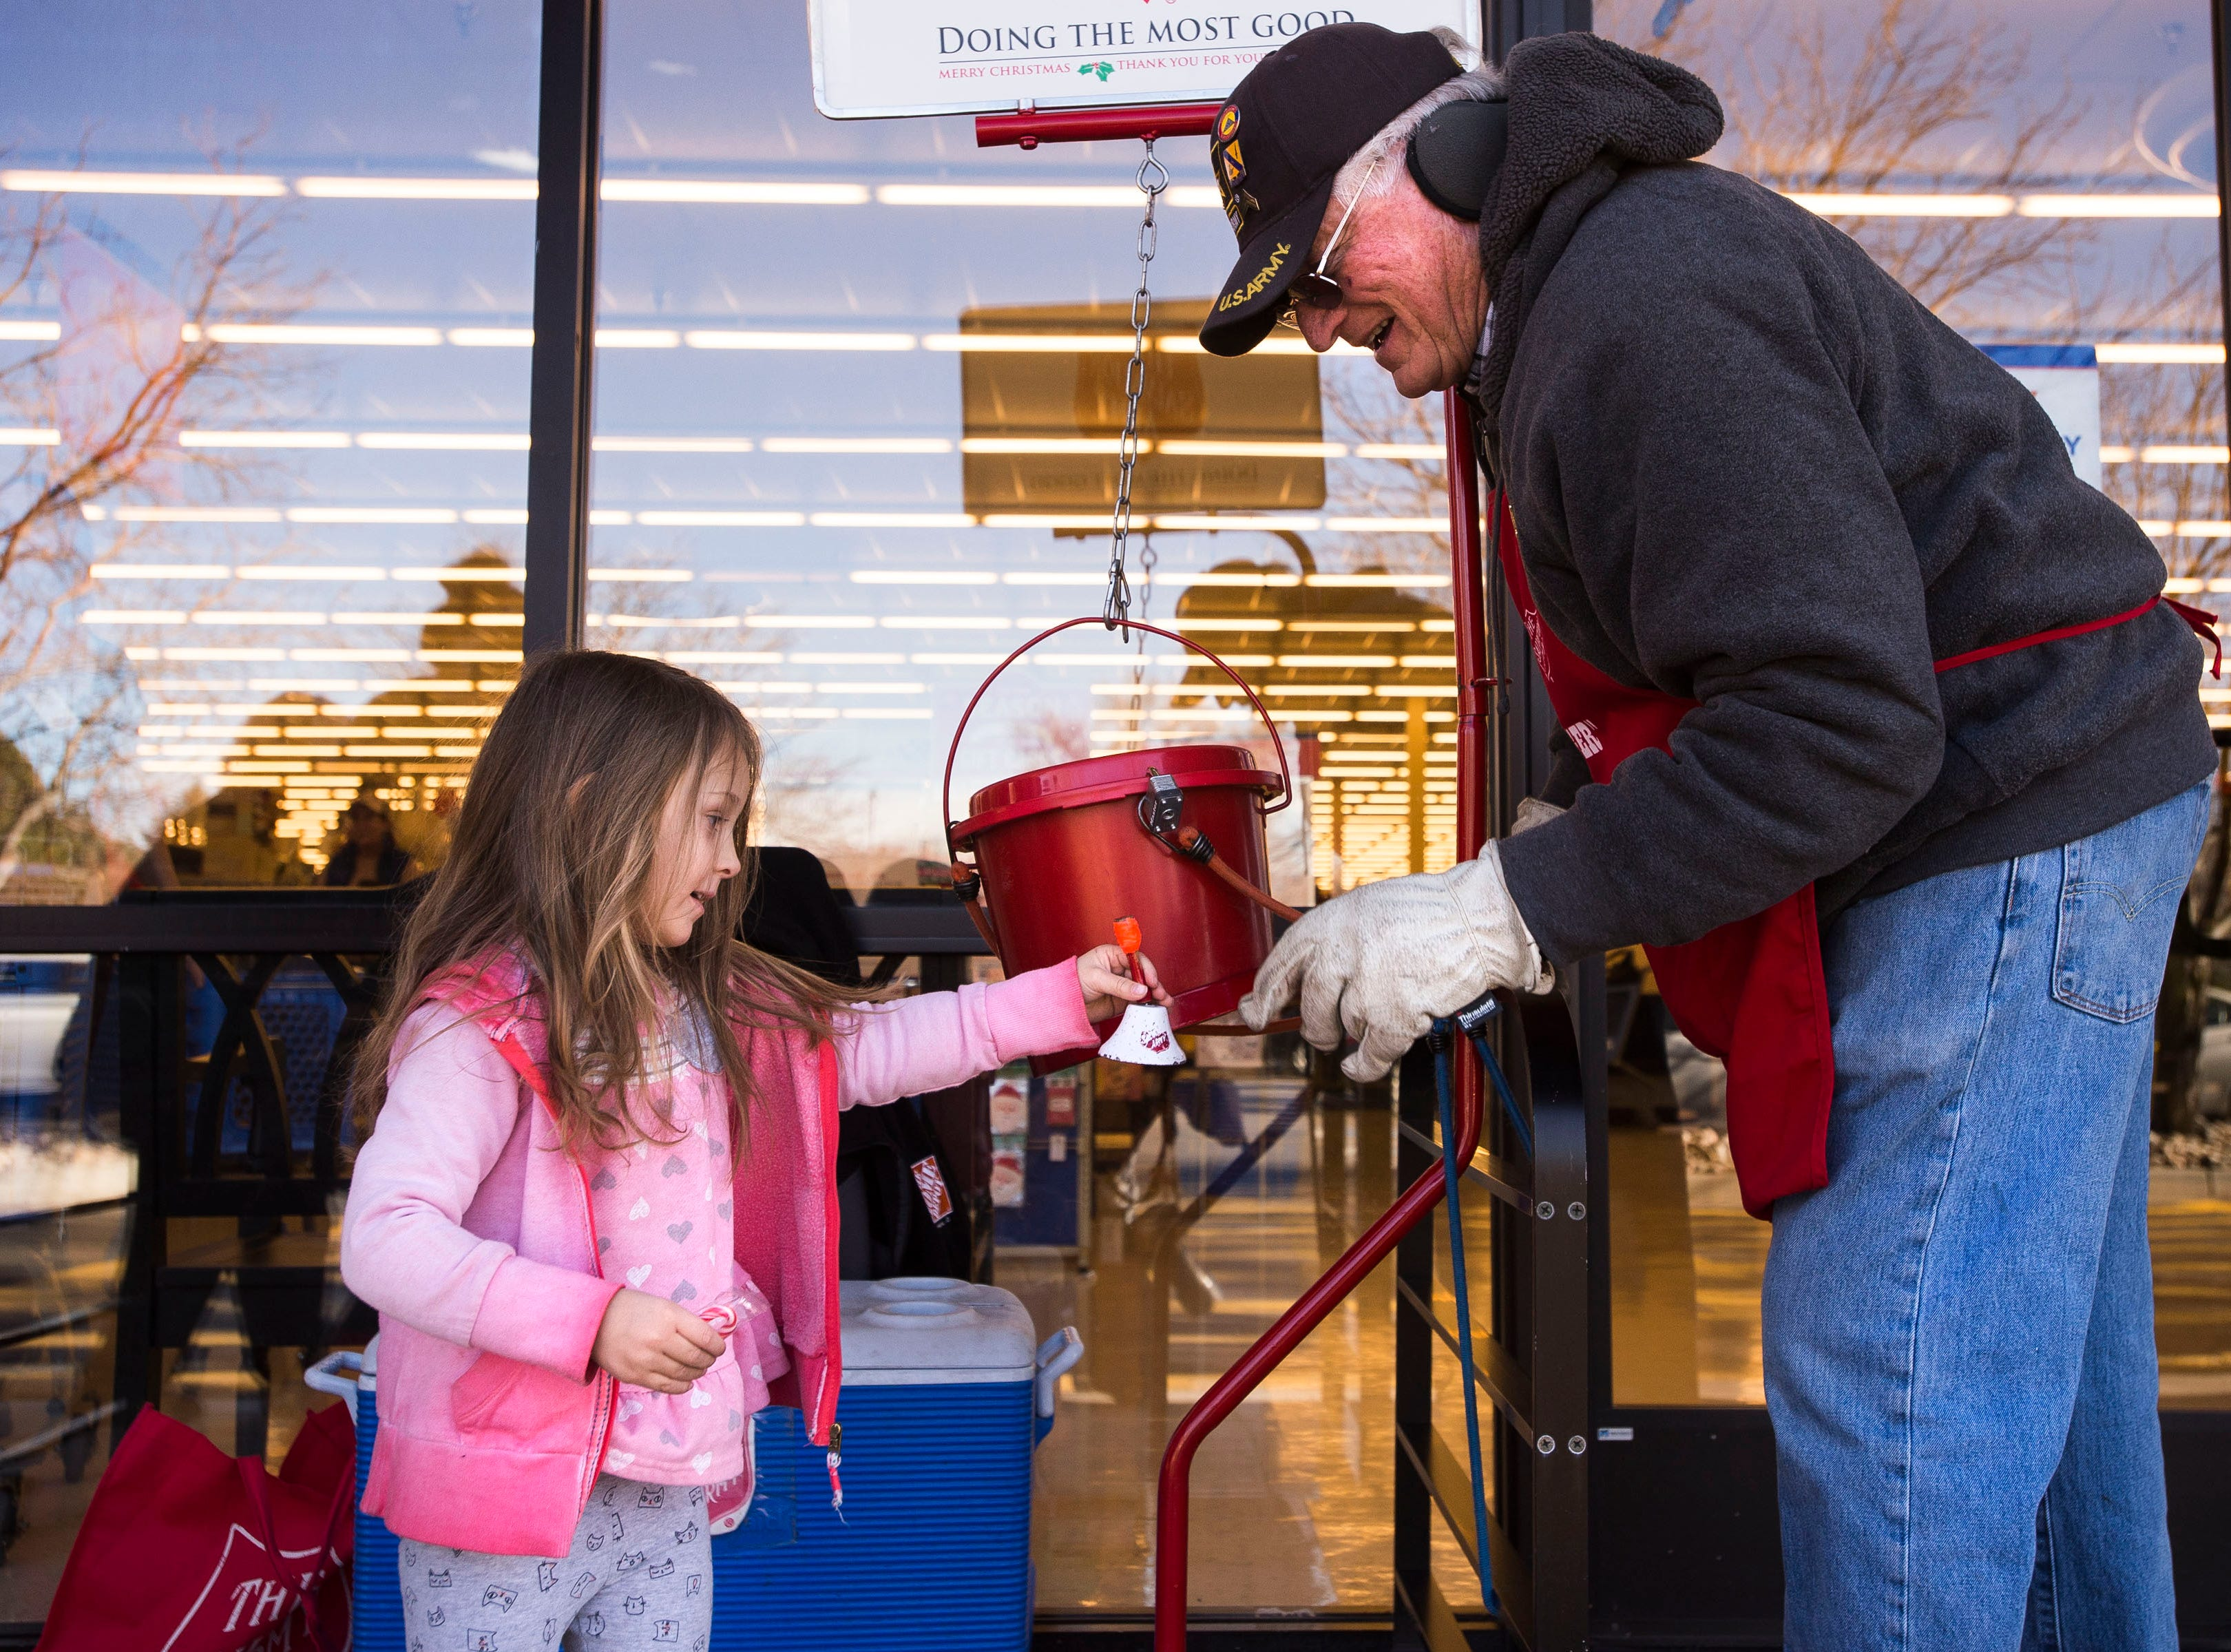 Salvation Army bell ringer is Robert Thompson lets three-year-old Emerson Fry ring the bell after dropping a donation into the bucket on Friday, Dec. 21, 2018, in front of the Hobby Lobby on South College Avenue in Fort Collins, Colo.